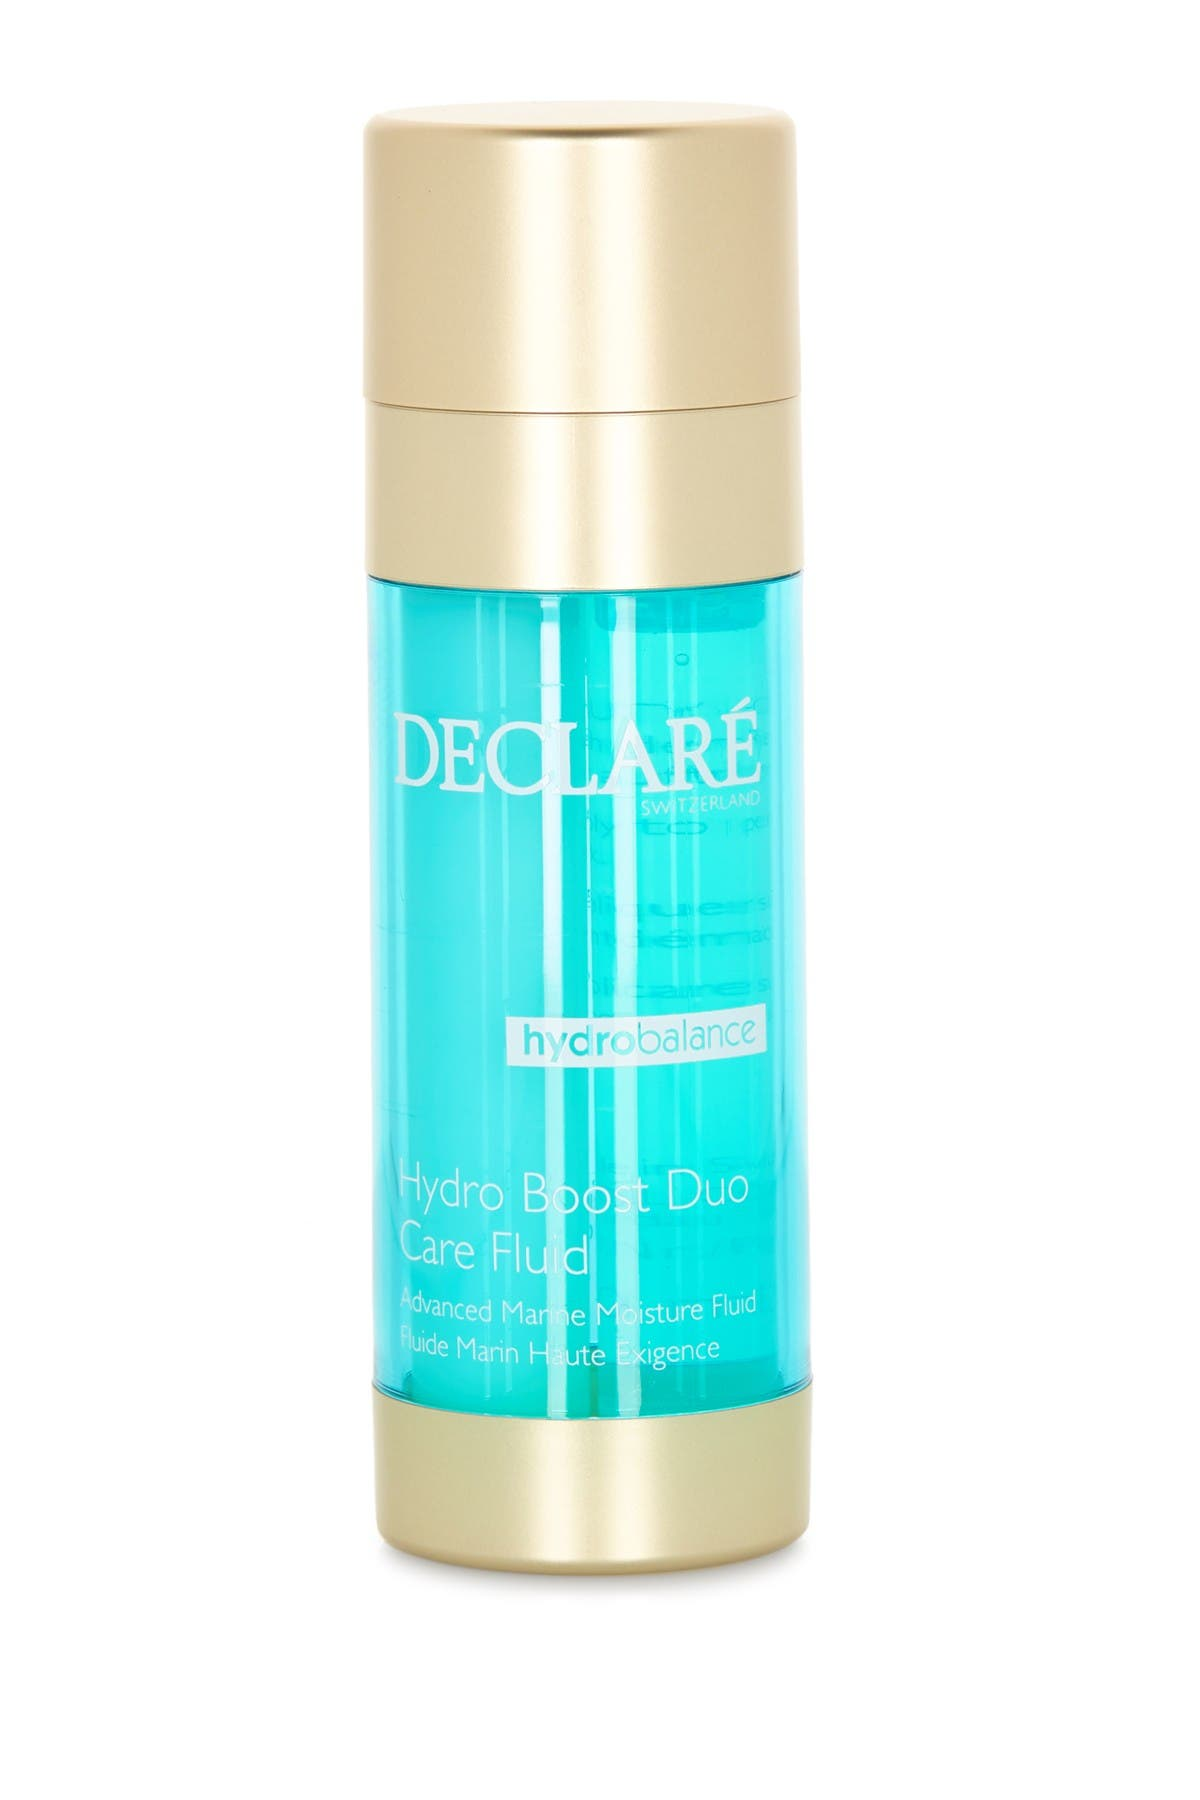 Image of DECLARE Hydro Boost Duo Care Fluid